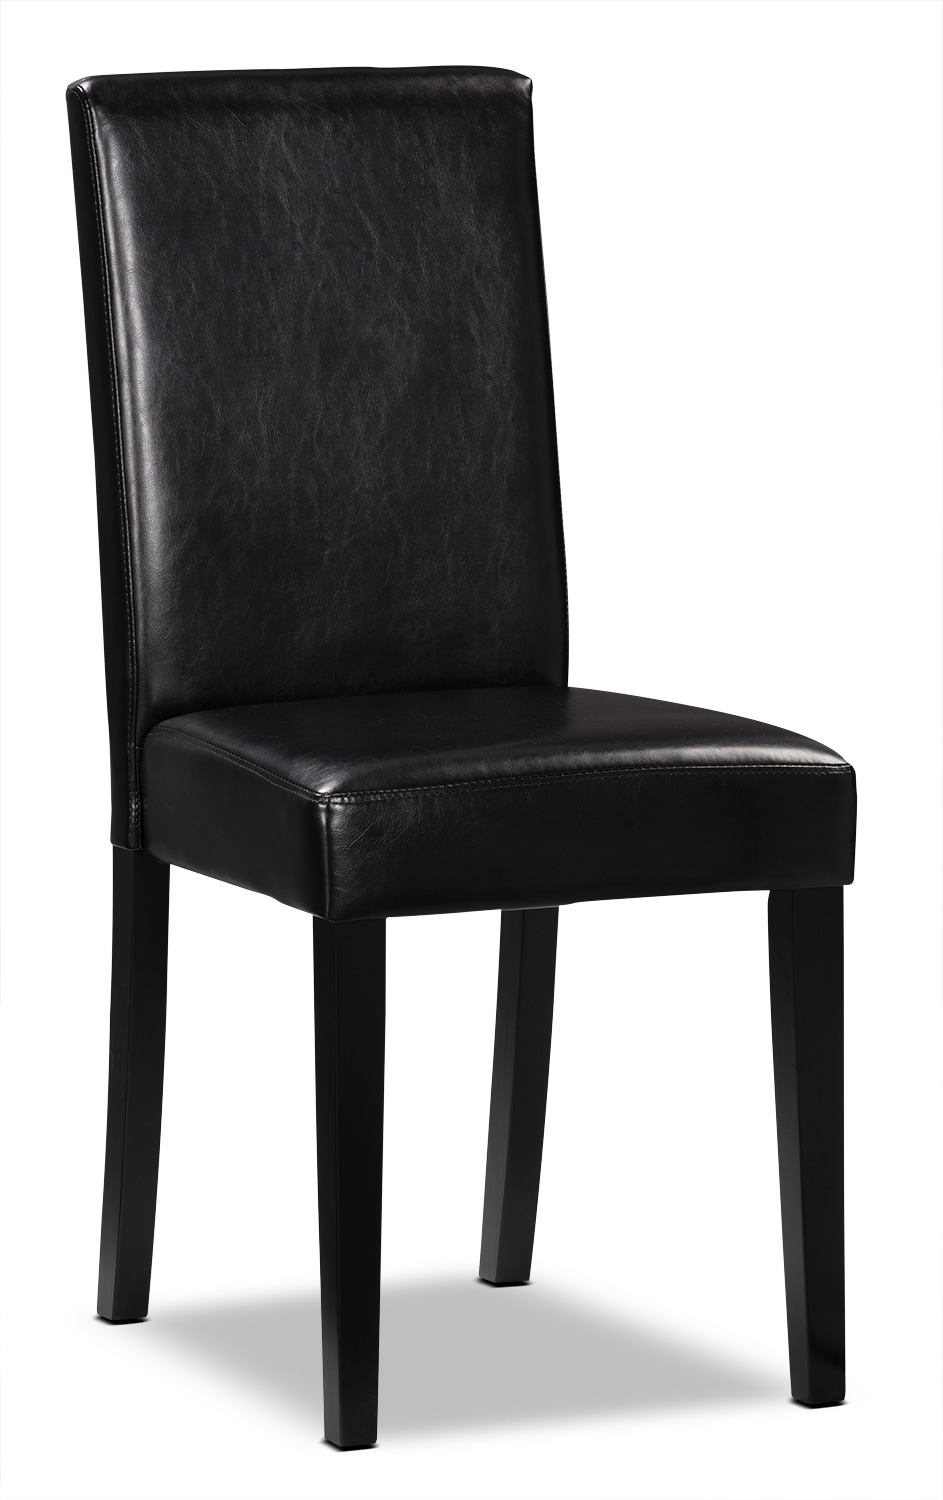 Dining Room Furniture - Black Faux Leather Accent Dining Chair